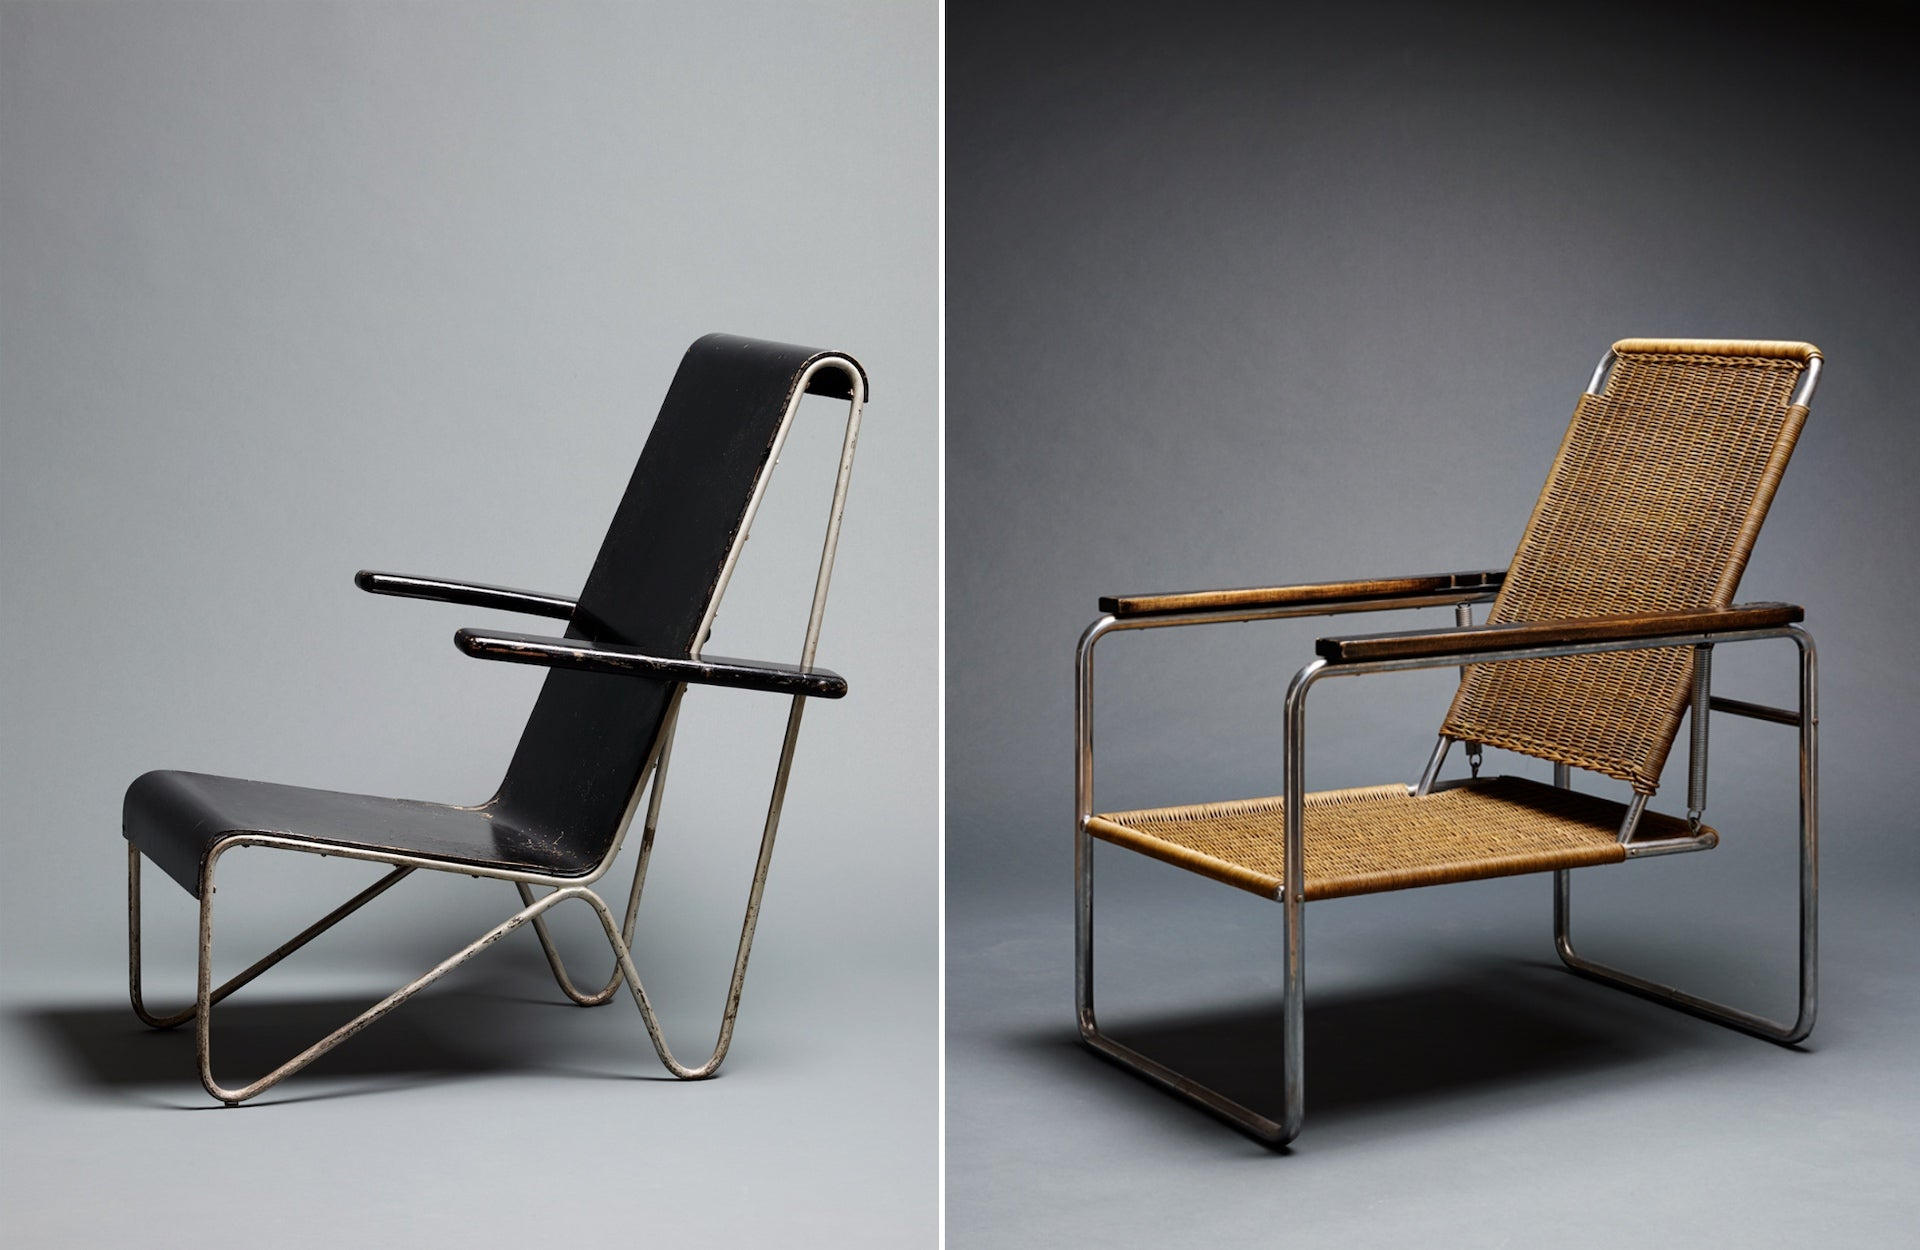 Beugel Armchair by Gerrit Thomas Rietveld, 1927, and Lounge Chair B25 by Marcel Breuer, 1928/29. Photos © Galerie Ulrich Fiedler